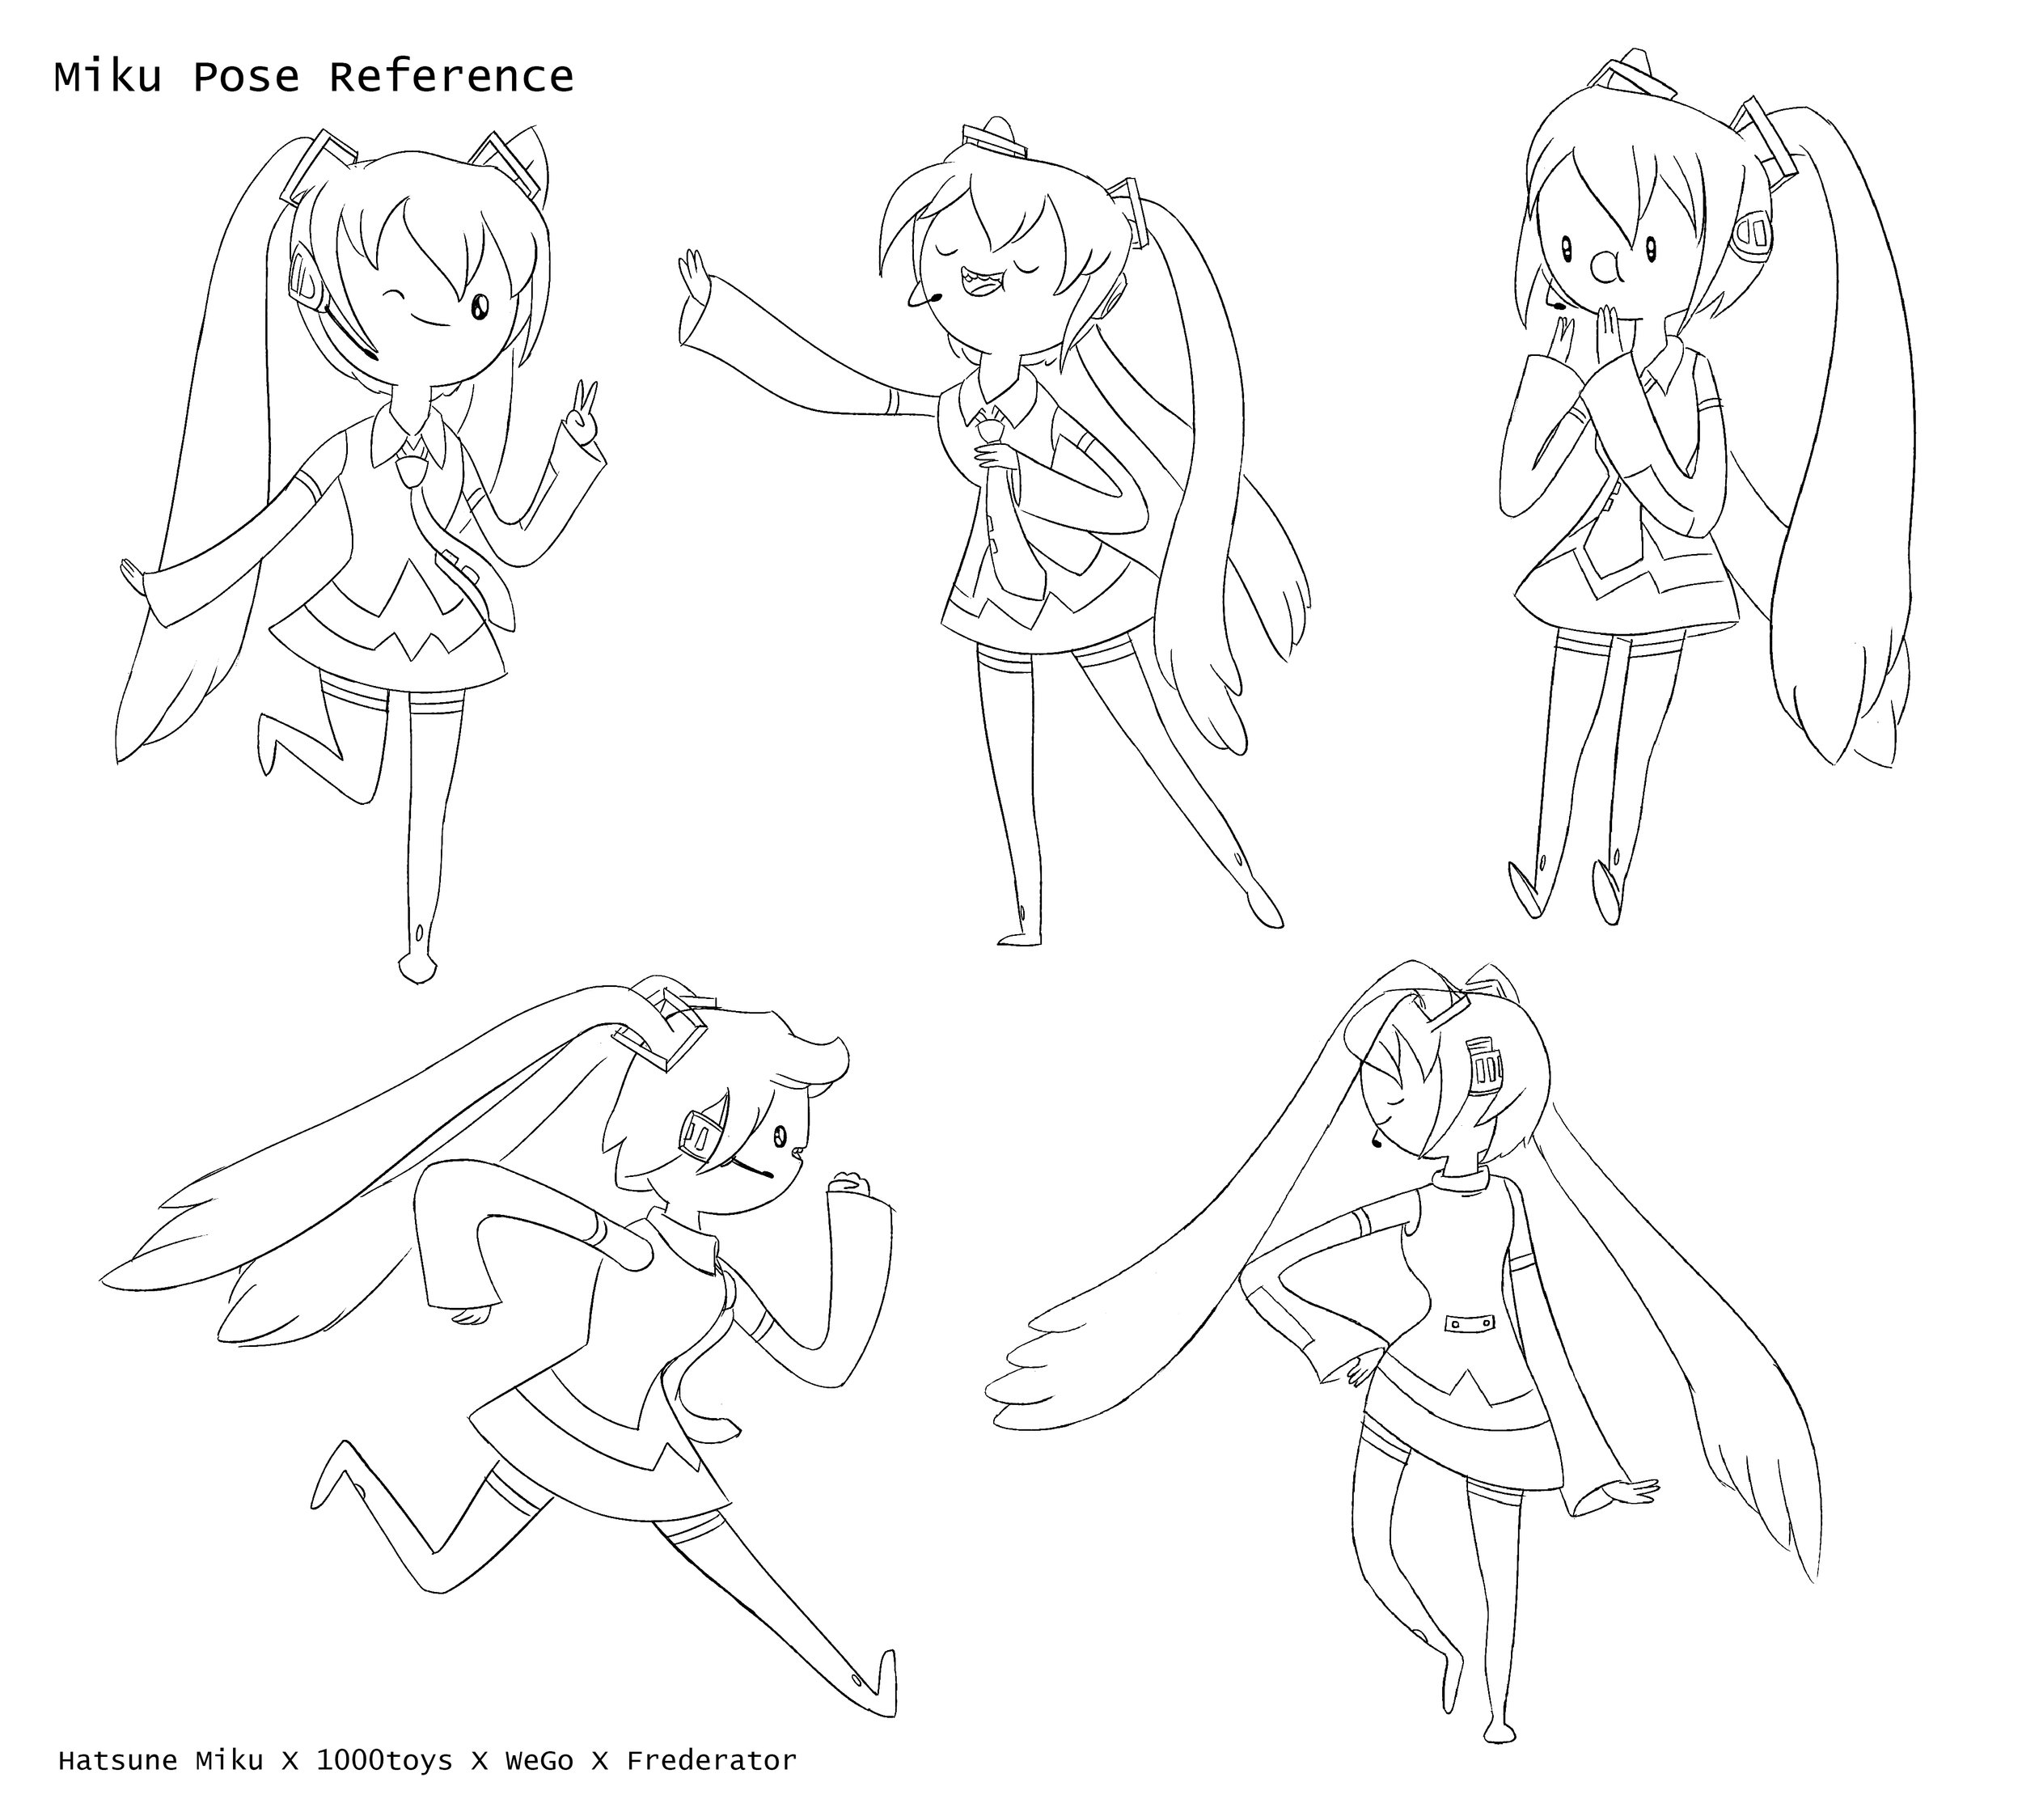 The Miku character in varying reference poses